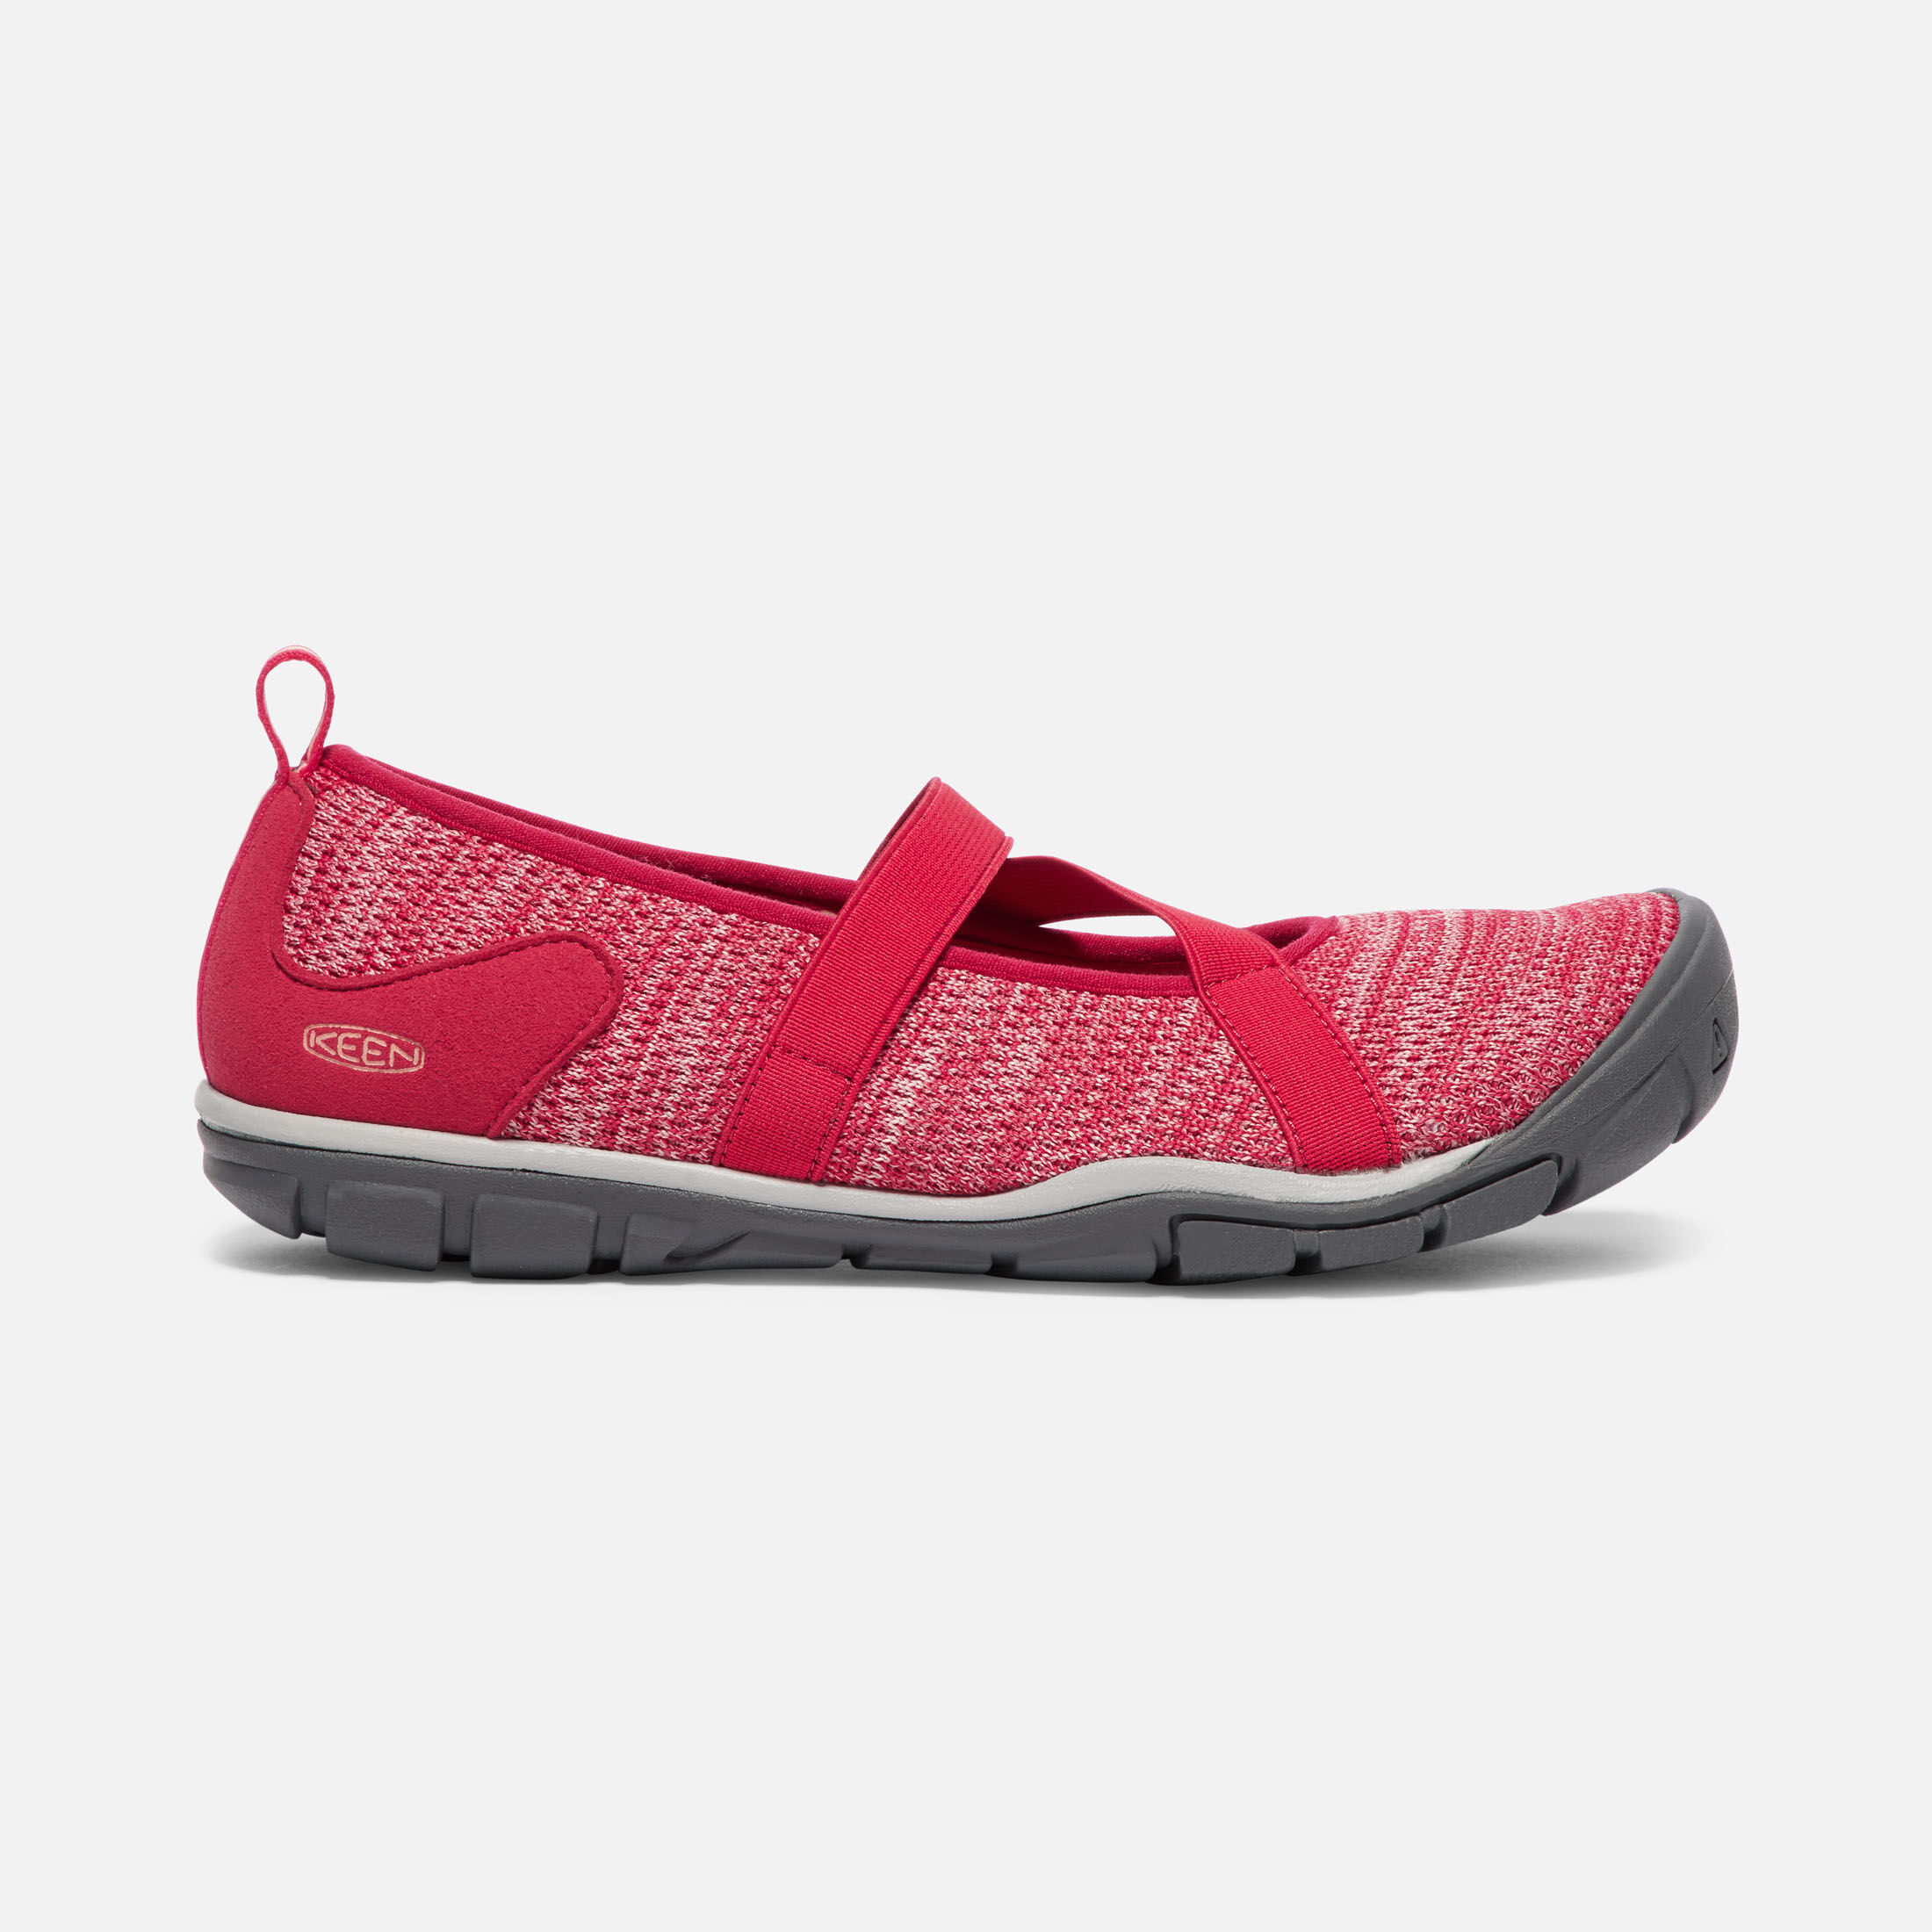 free shipping visa payment from china online Keen Hush Knit Shoes - Women's best place to buy 2014 newest online Kl9gcSfez